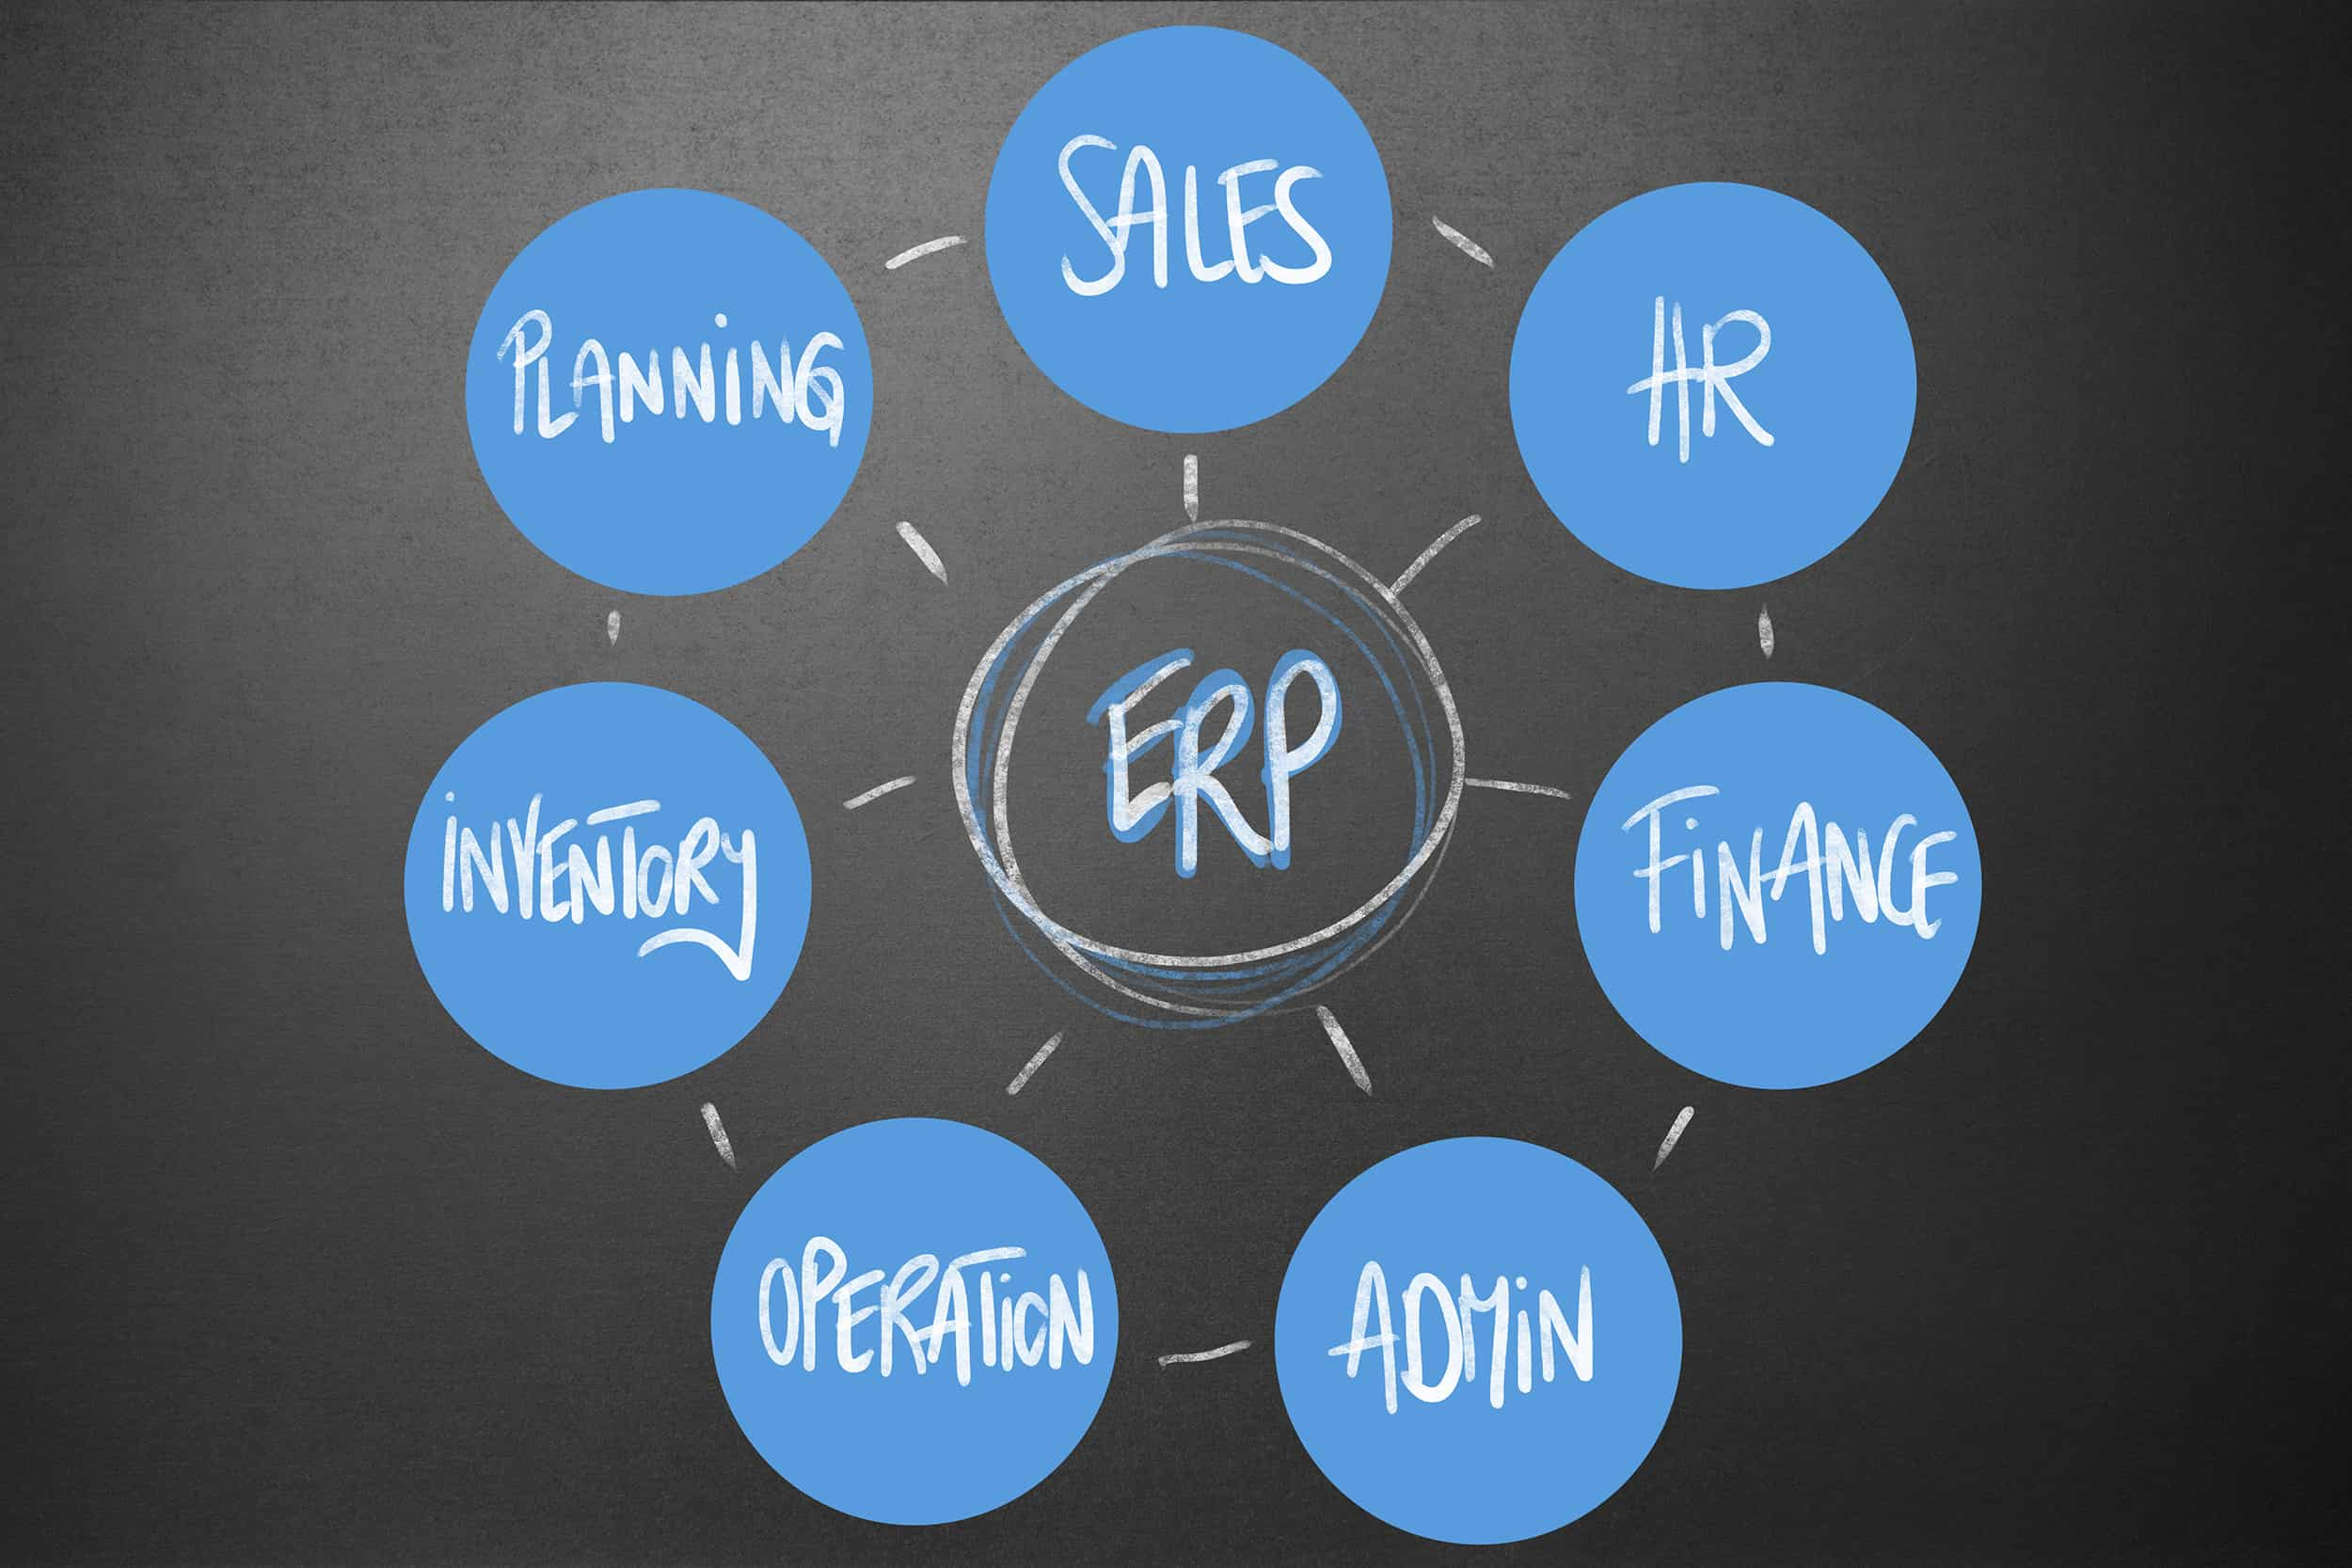 Management - Enterprise Resource Planning (ERP)